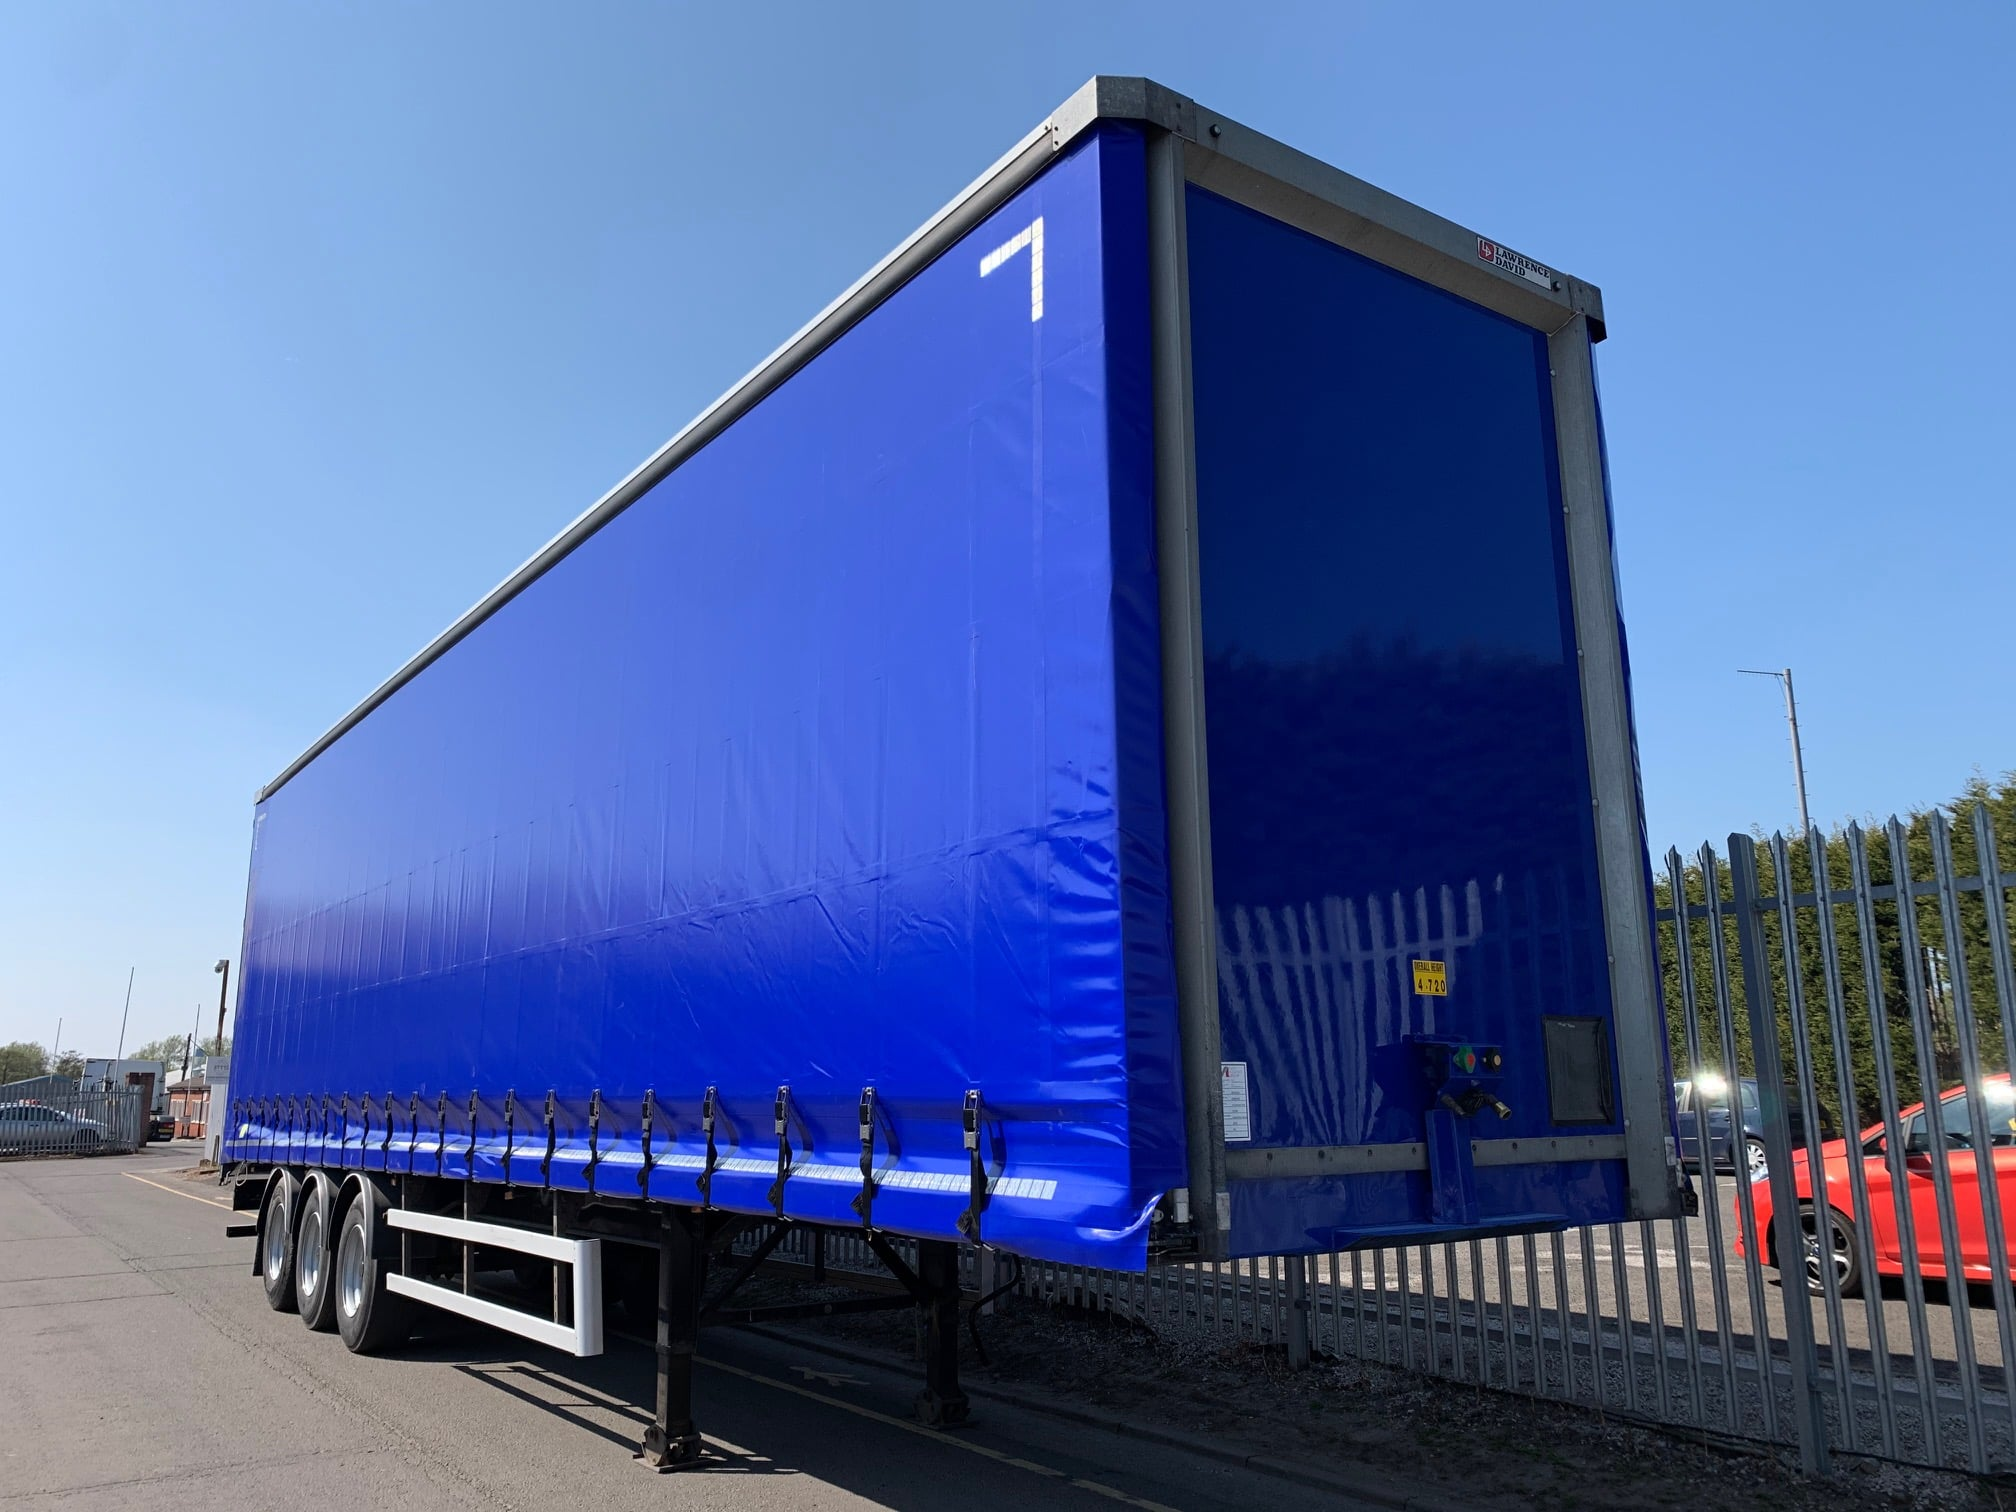 2015 Lawrence David Curtainsider. 4.7m External Height, 3.05m Internal Height, BPW Axles, Drum Brakes, Wisa Deck Floor, Barn Doors, Pillarless, Raise Lower Valve Facility, Supplied with Body Paint, Wheels Painted and New ENXL Rated Curtains, Choice of 4 Available.